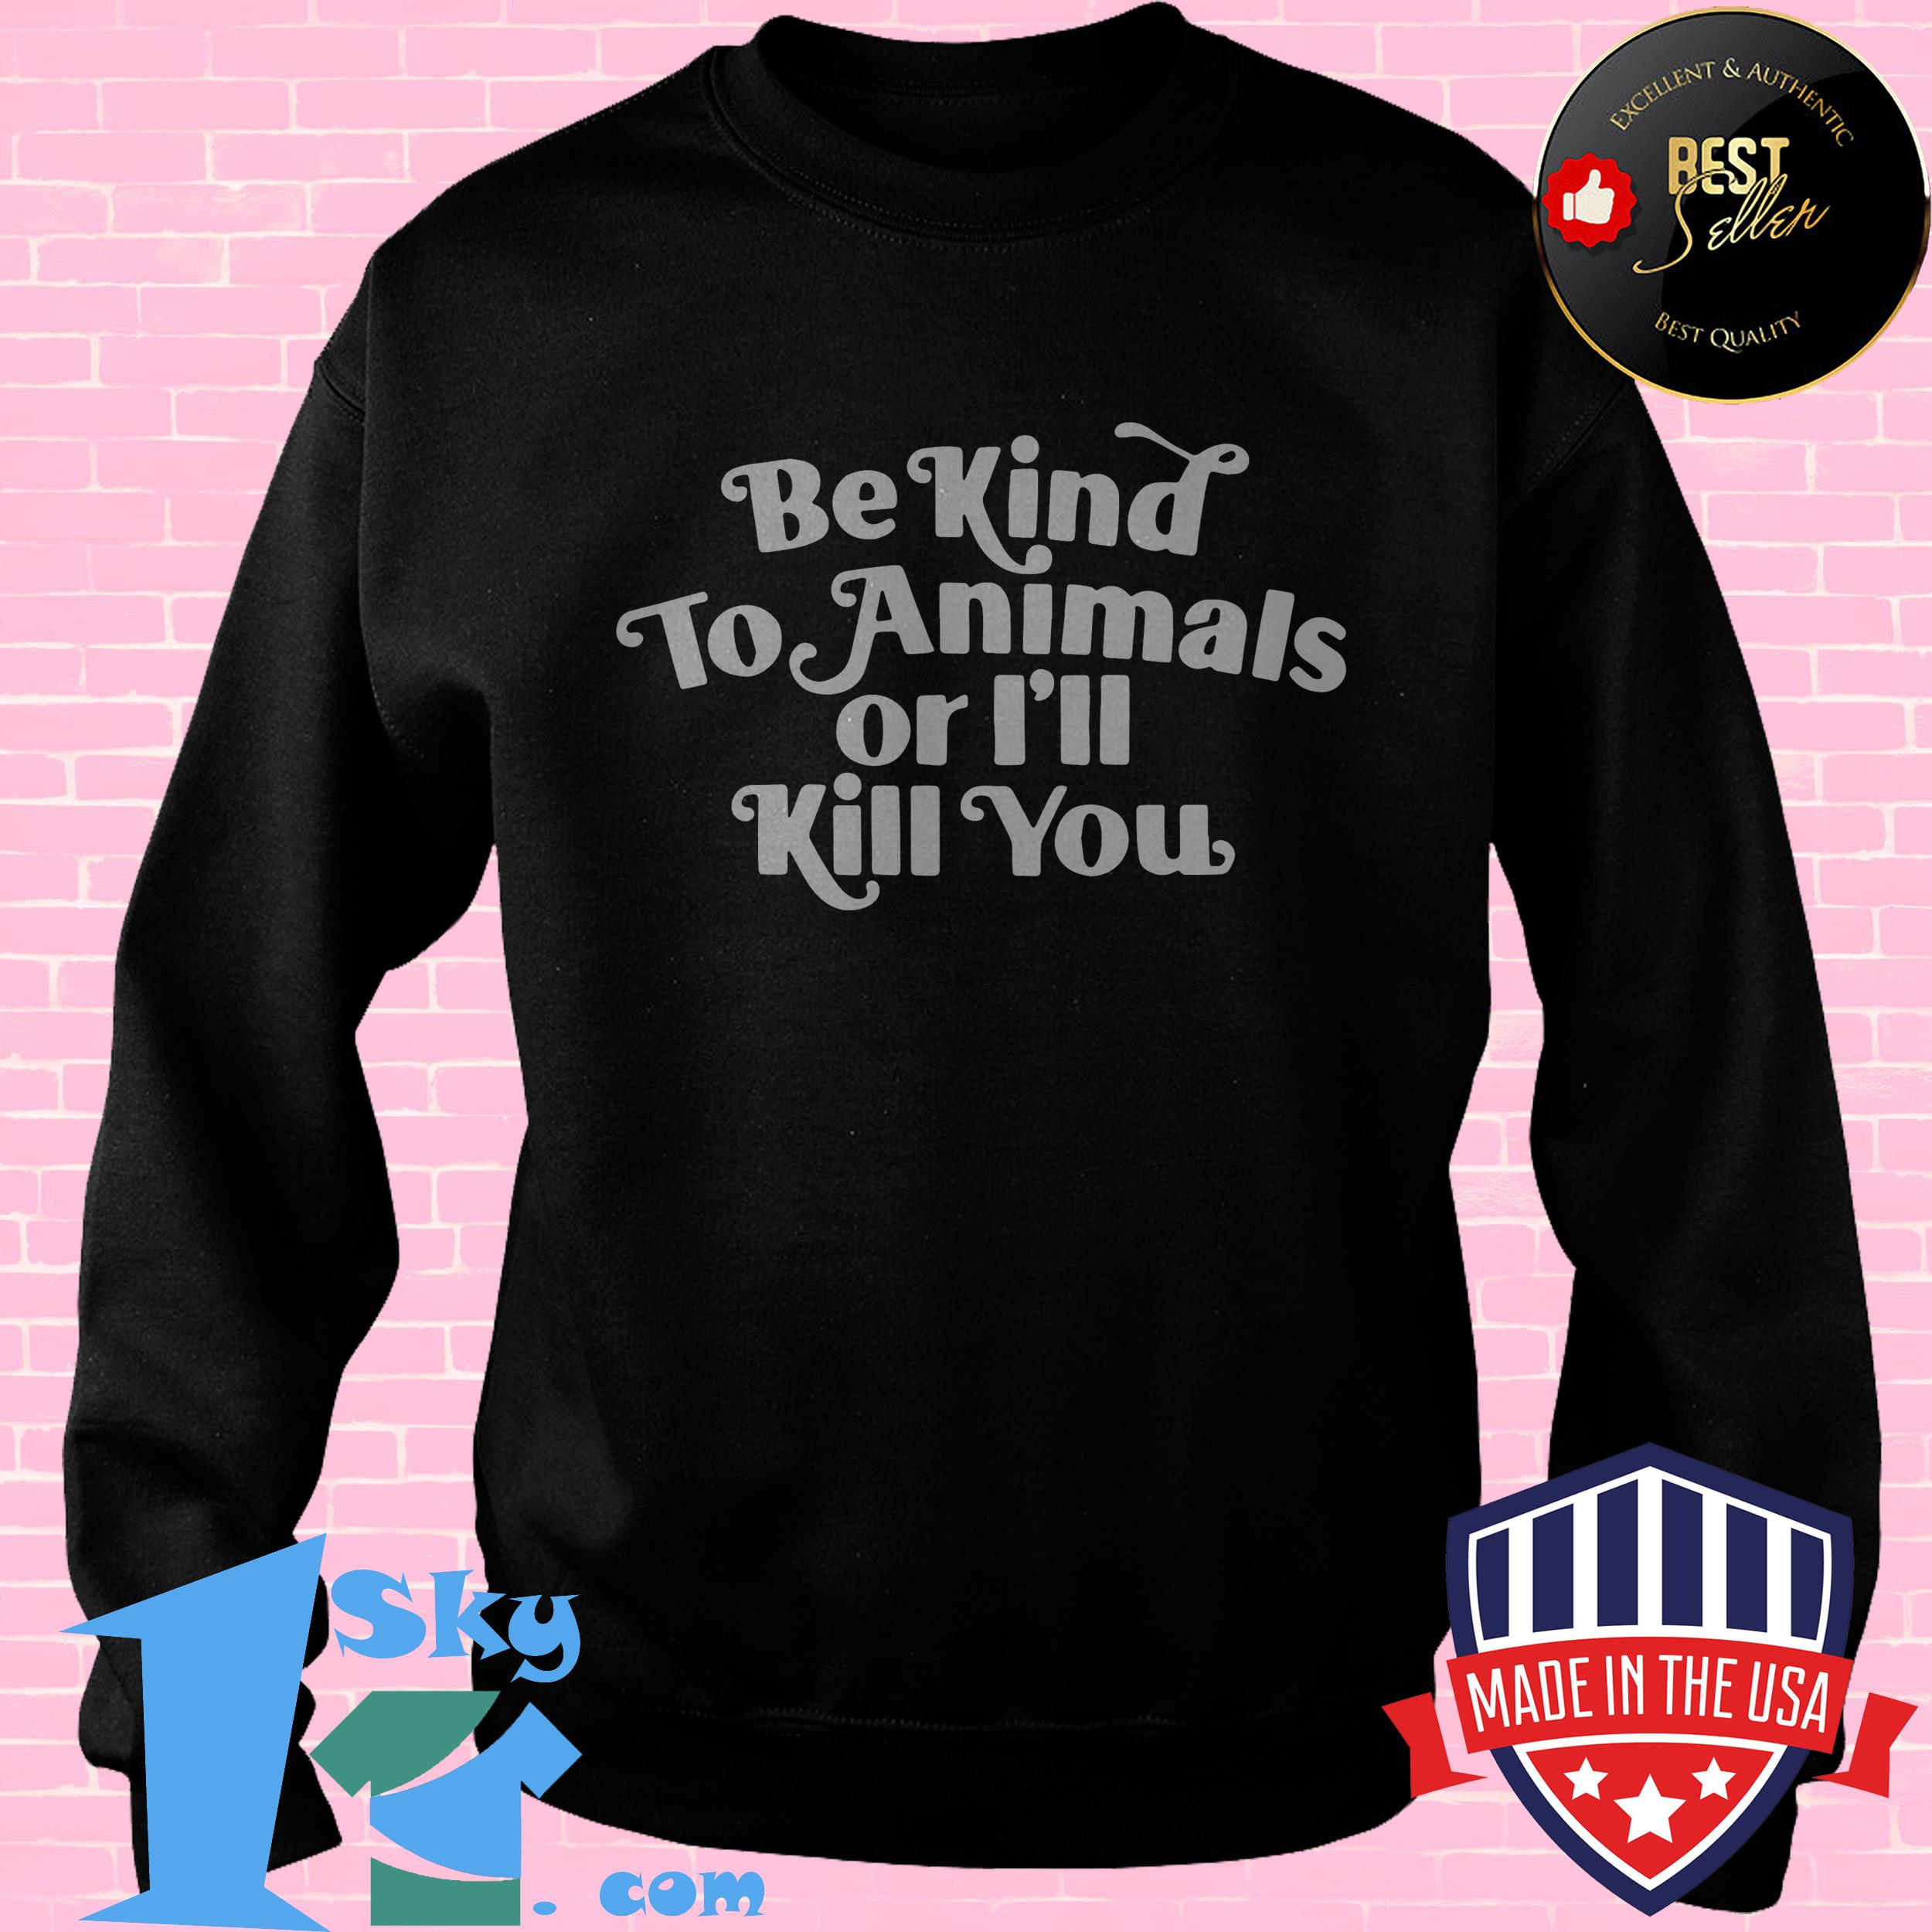 be kind to animal or ill kill you sweatshirt - Be Kind To Animal Or I'll Kill You shirt